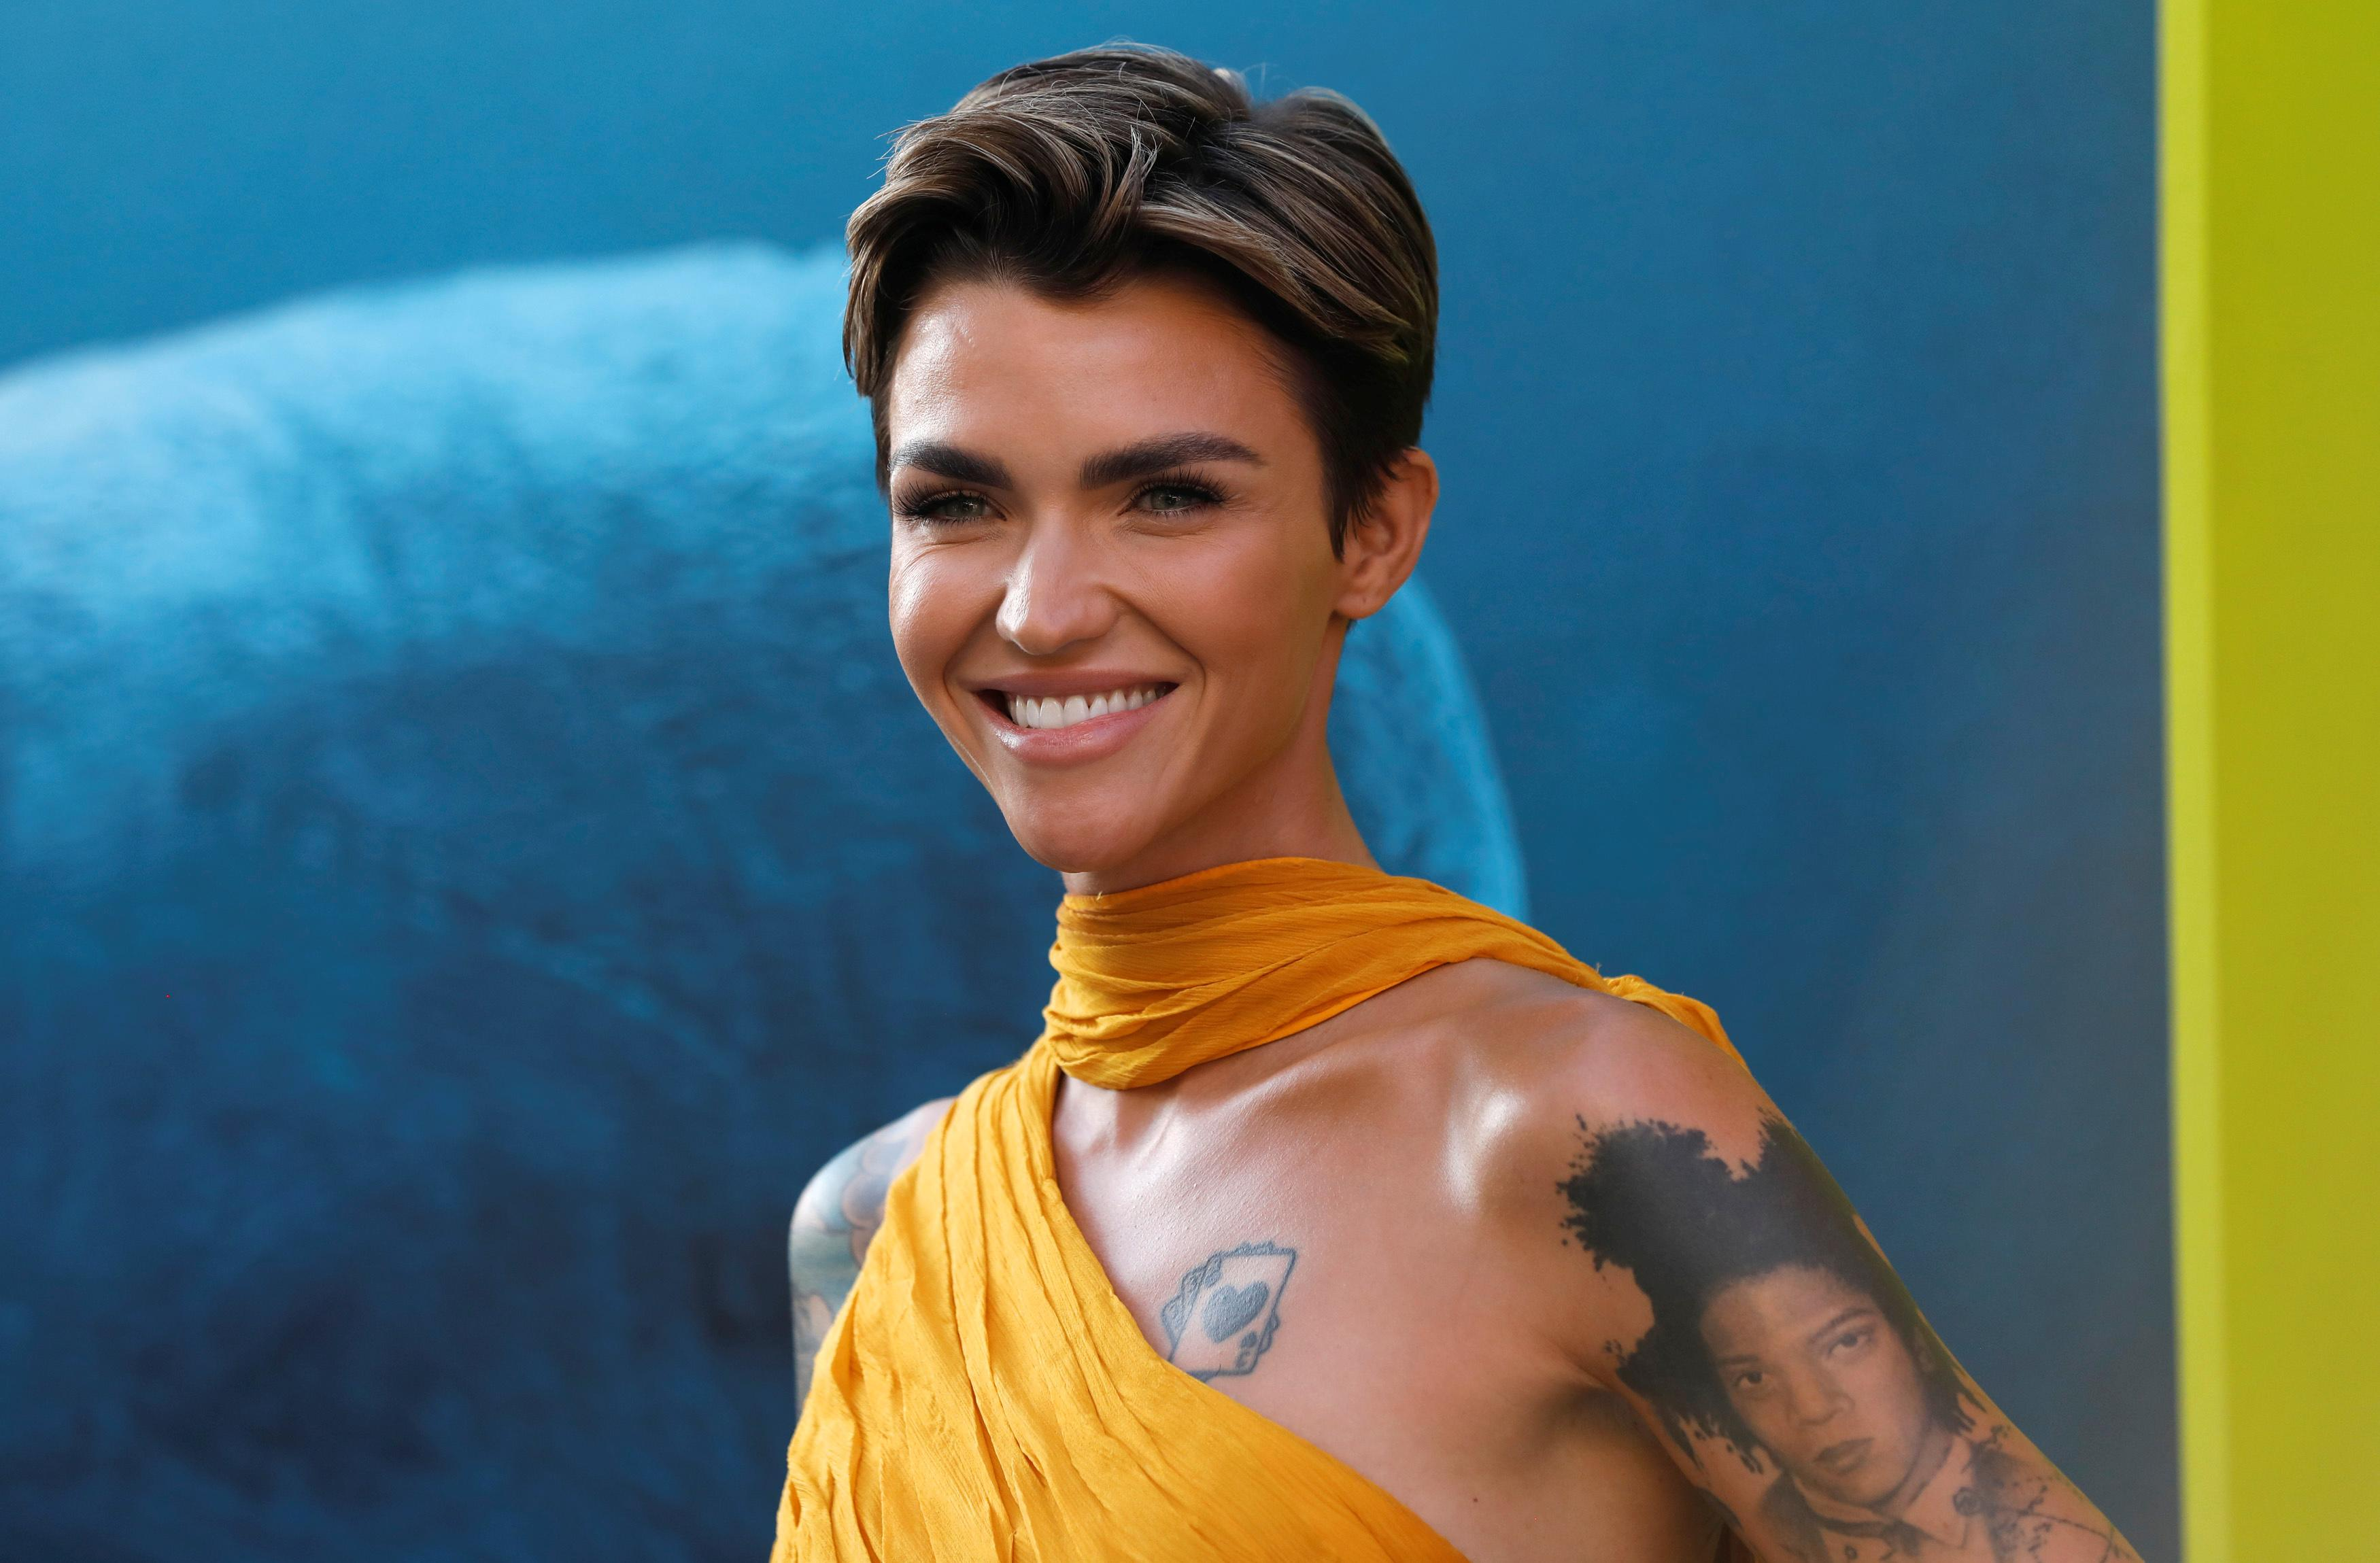 'Batwoman' star Ruby Rose opens up about depression, 'suicide attempts as young as 12' for World Mental Health Day